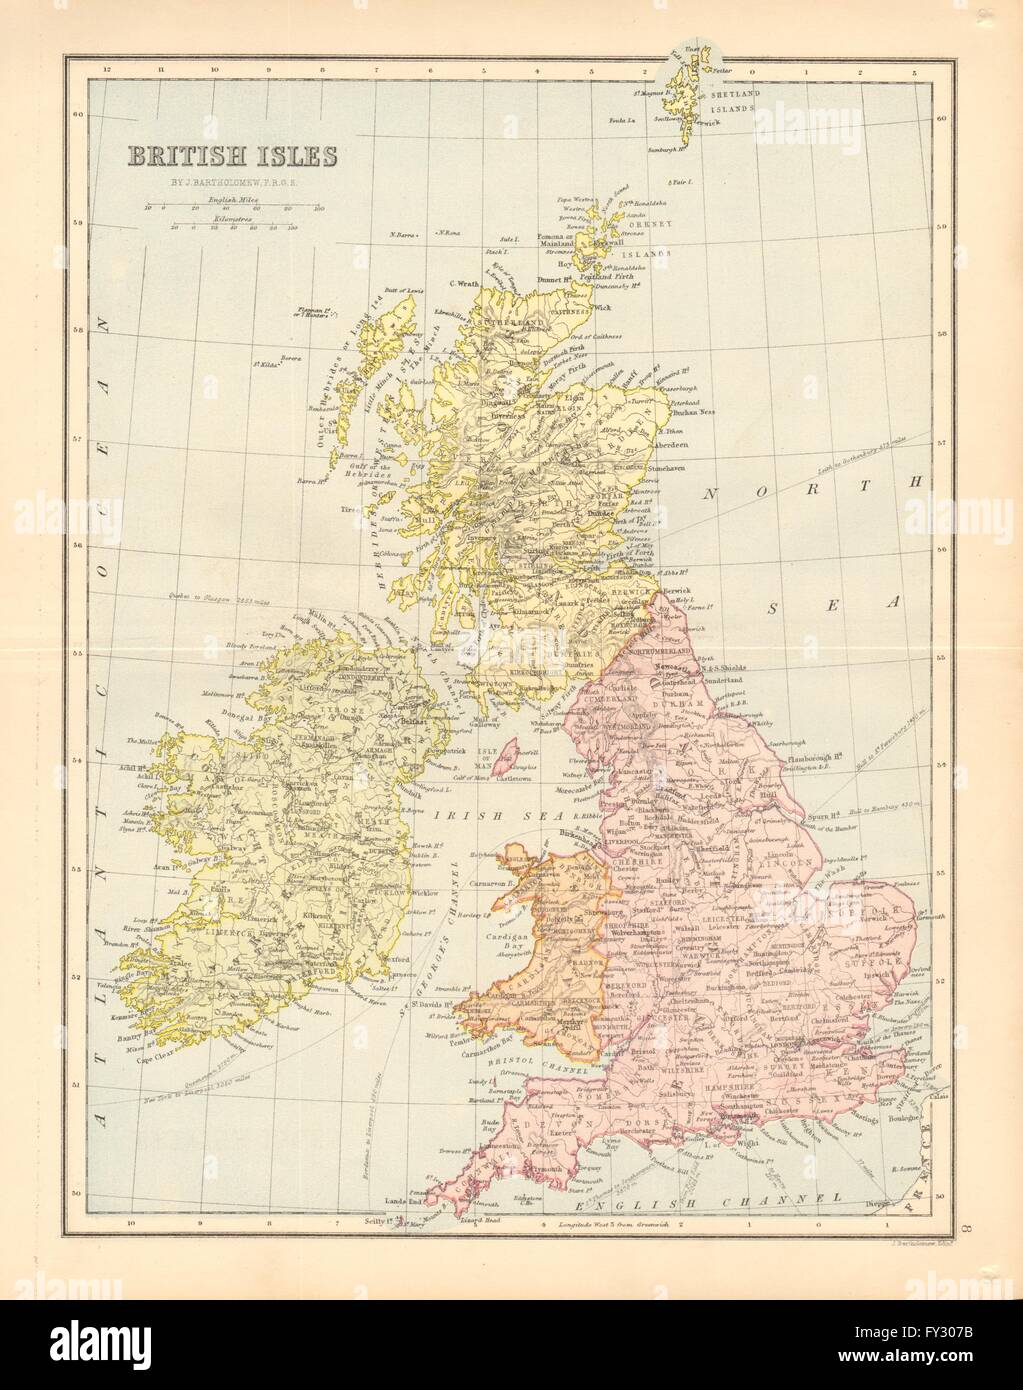 Map Of England Ireland Scotland Wales.England Ireland Scotland Wales Map Stock Photos England Ireland